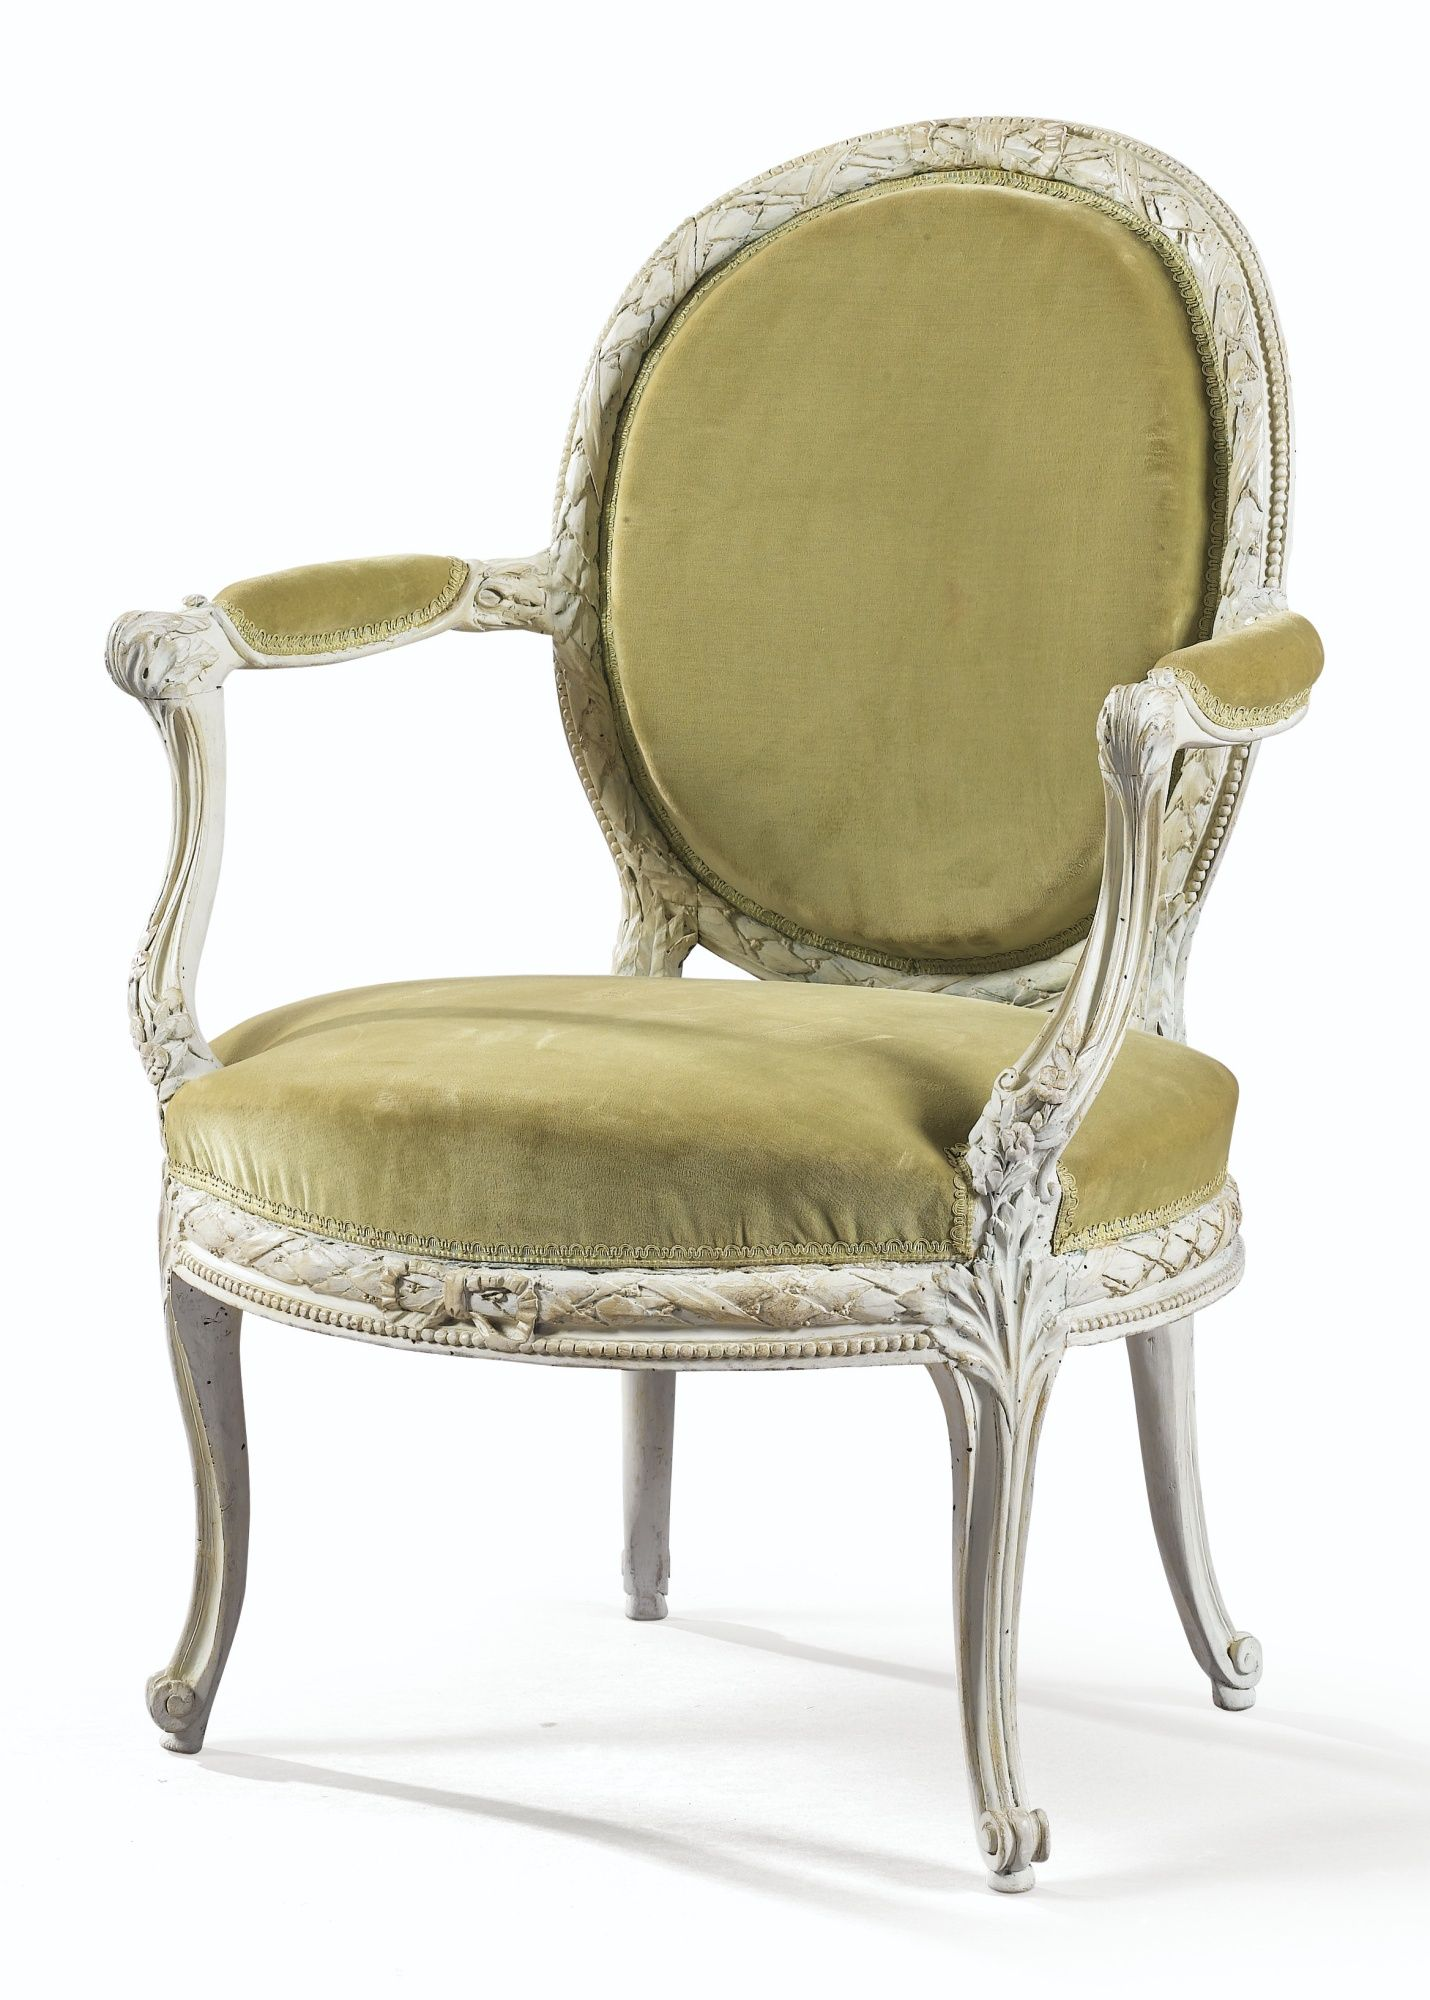 chairs armchairs sotheby s pf1601lot8xf5den armchair